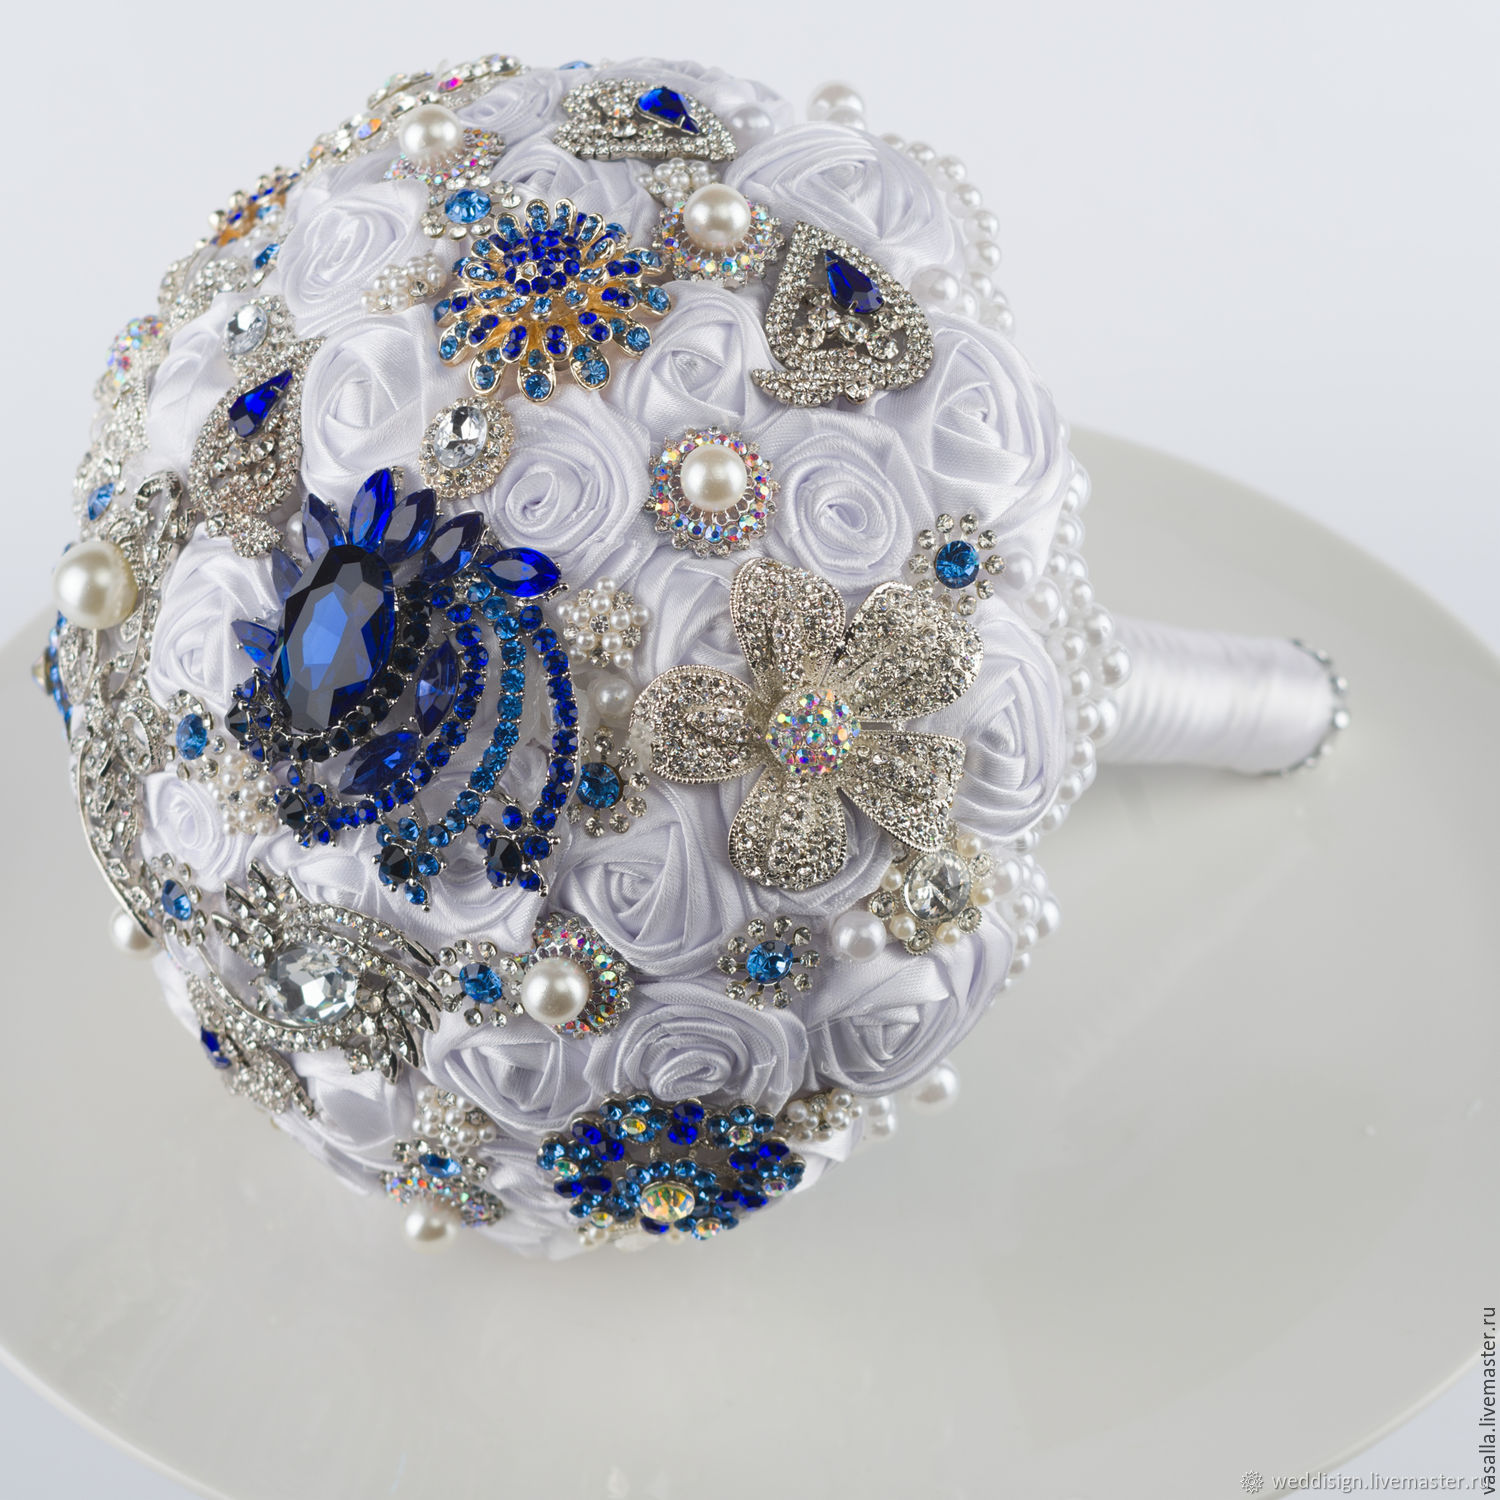 Brooch-Bouquet ' Diana'. White wedding brooch bouquet, Wedding bouquets, Moscow,  Фото №1